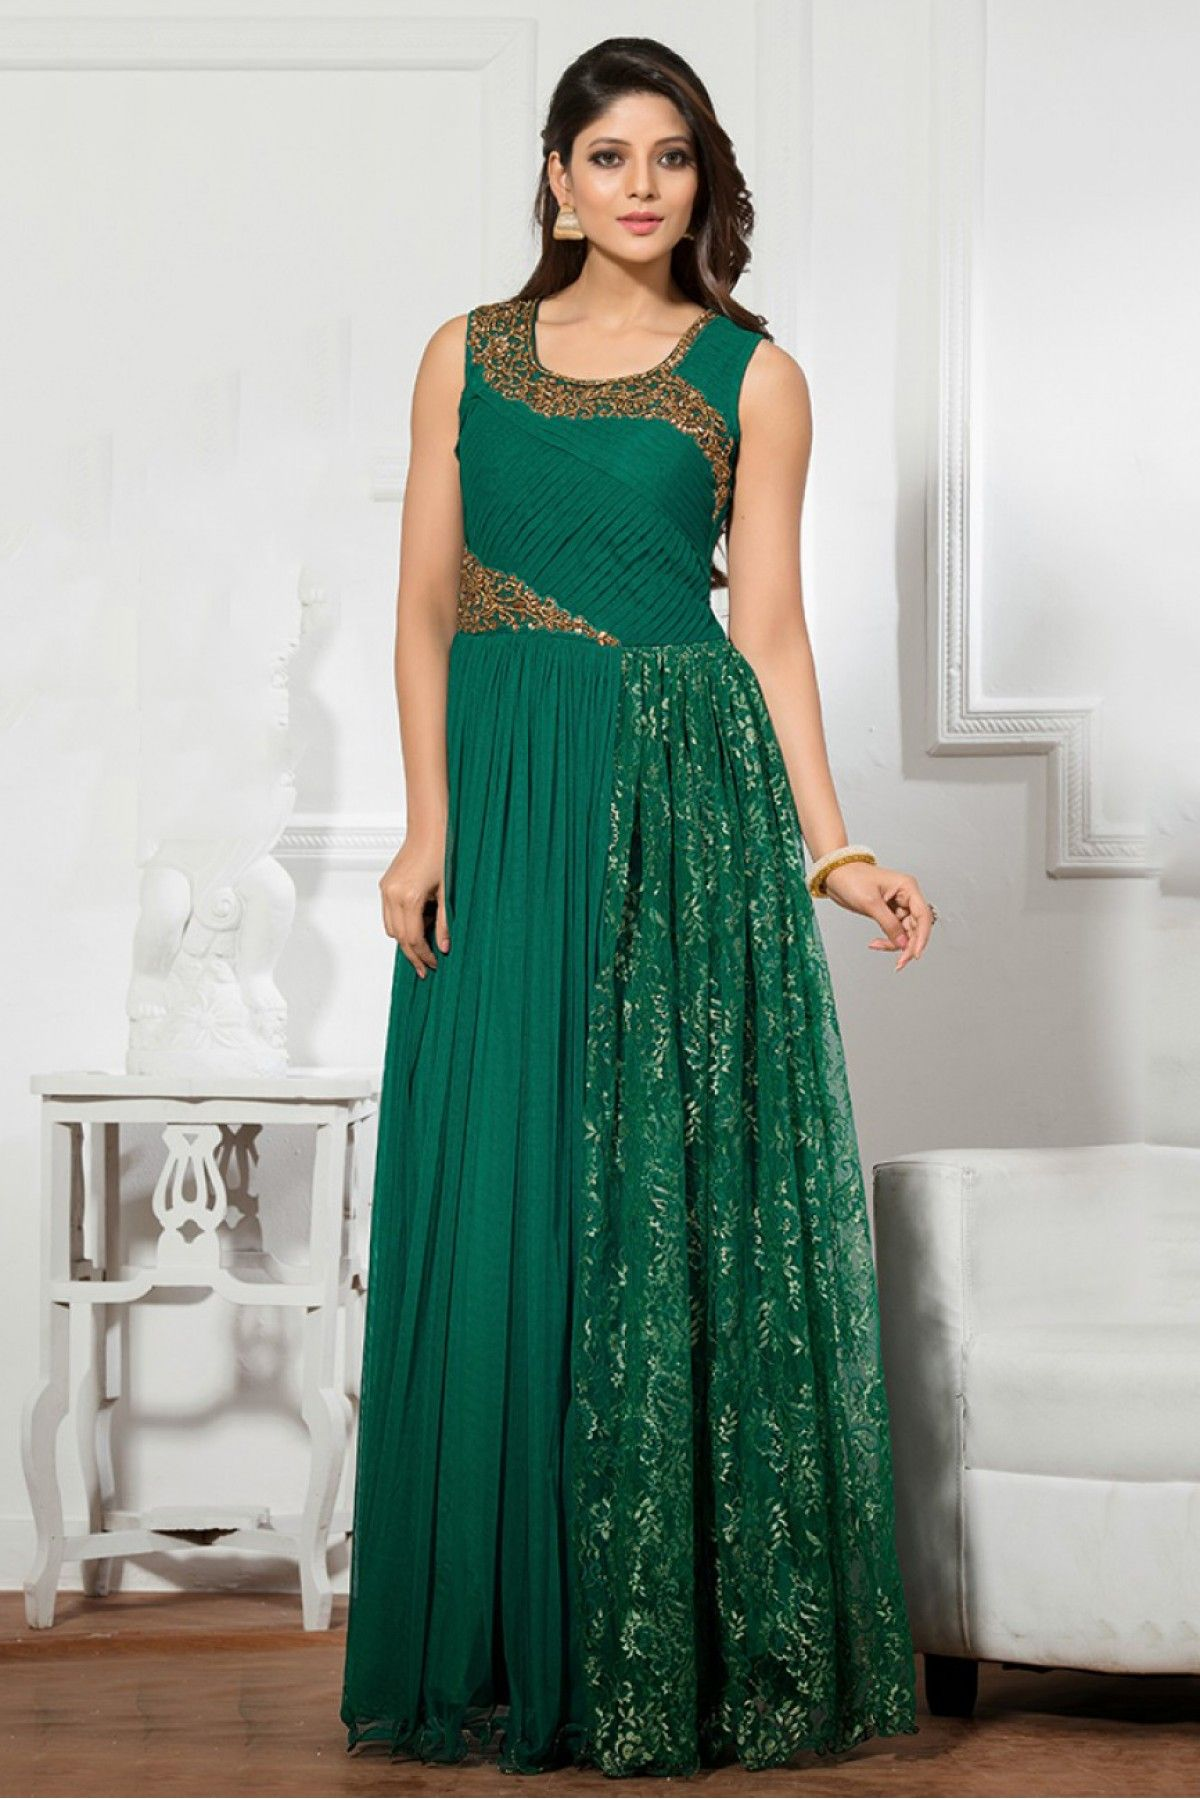 Net Semi Stitched Party Wear Gown In Green Colour | Wedding Gowns ...